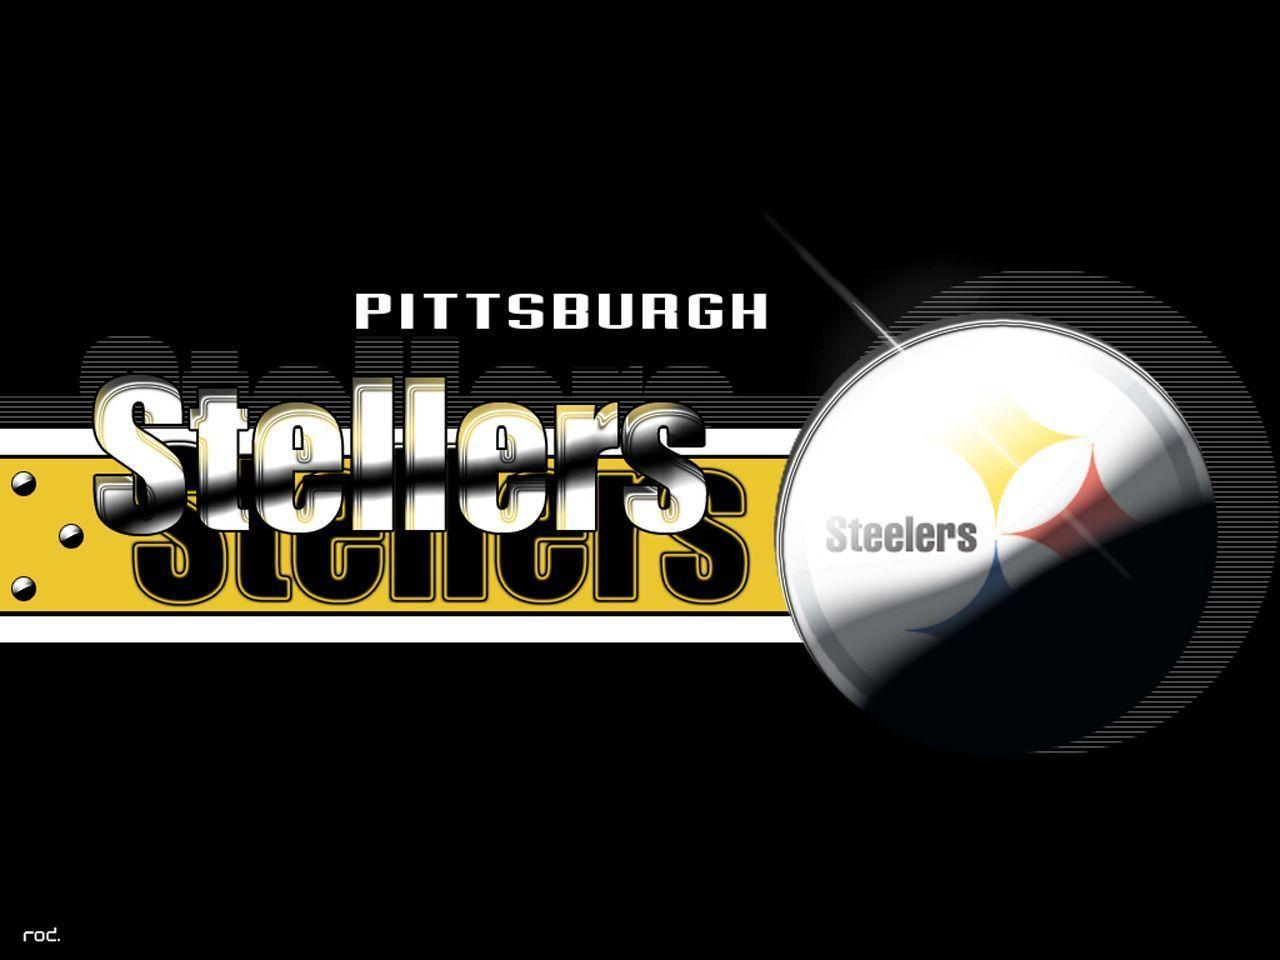 Pittsburgh Steelers Backgrounds For Computers 1280x960